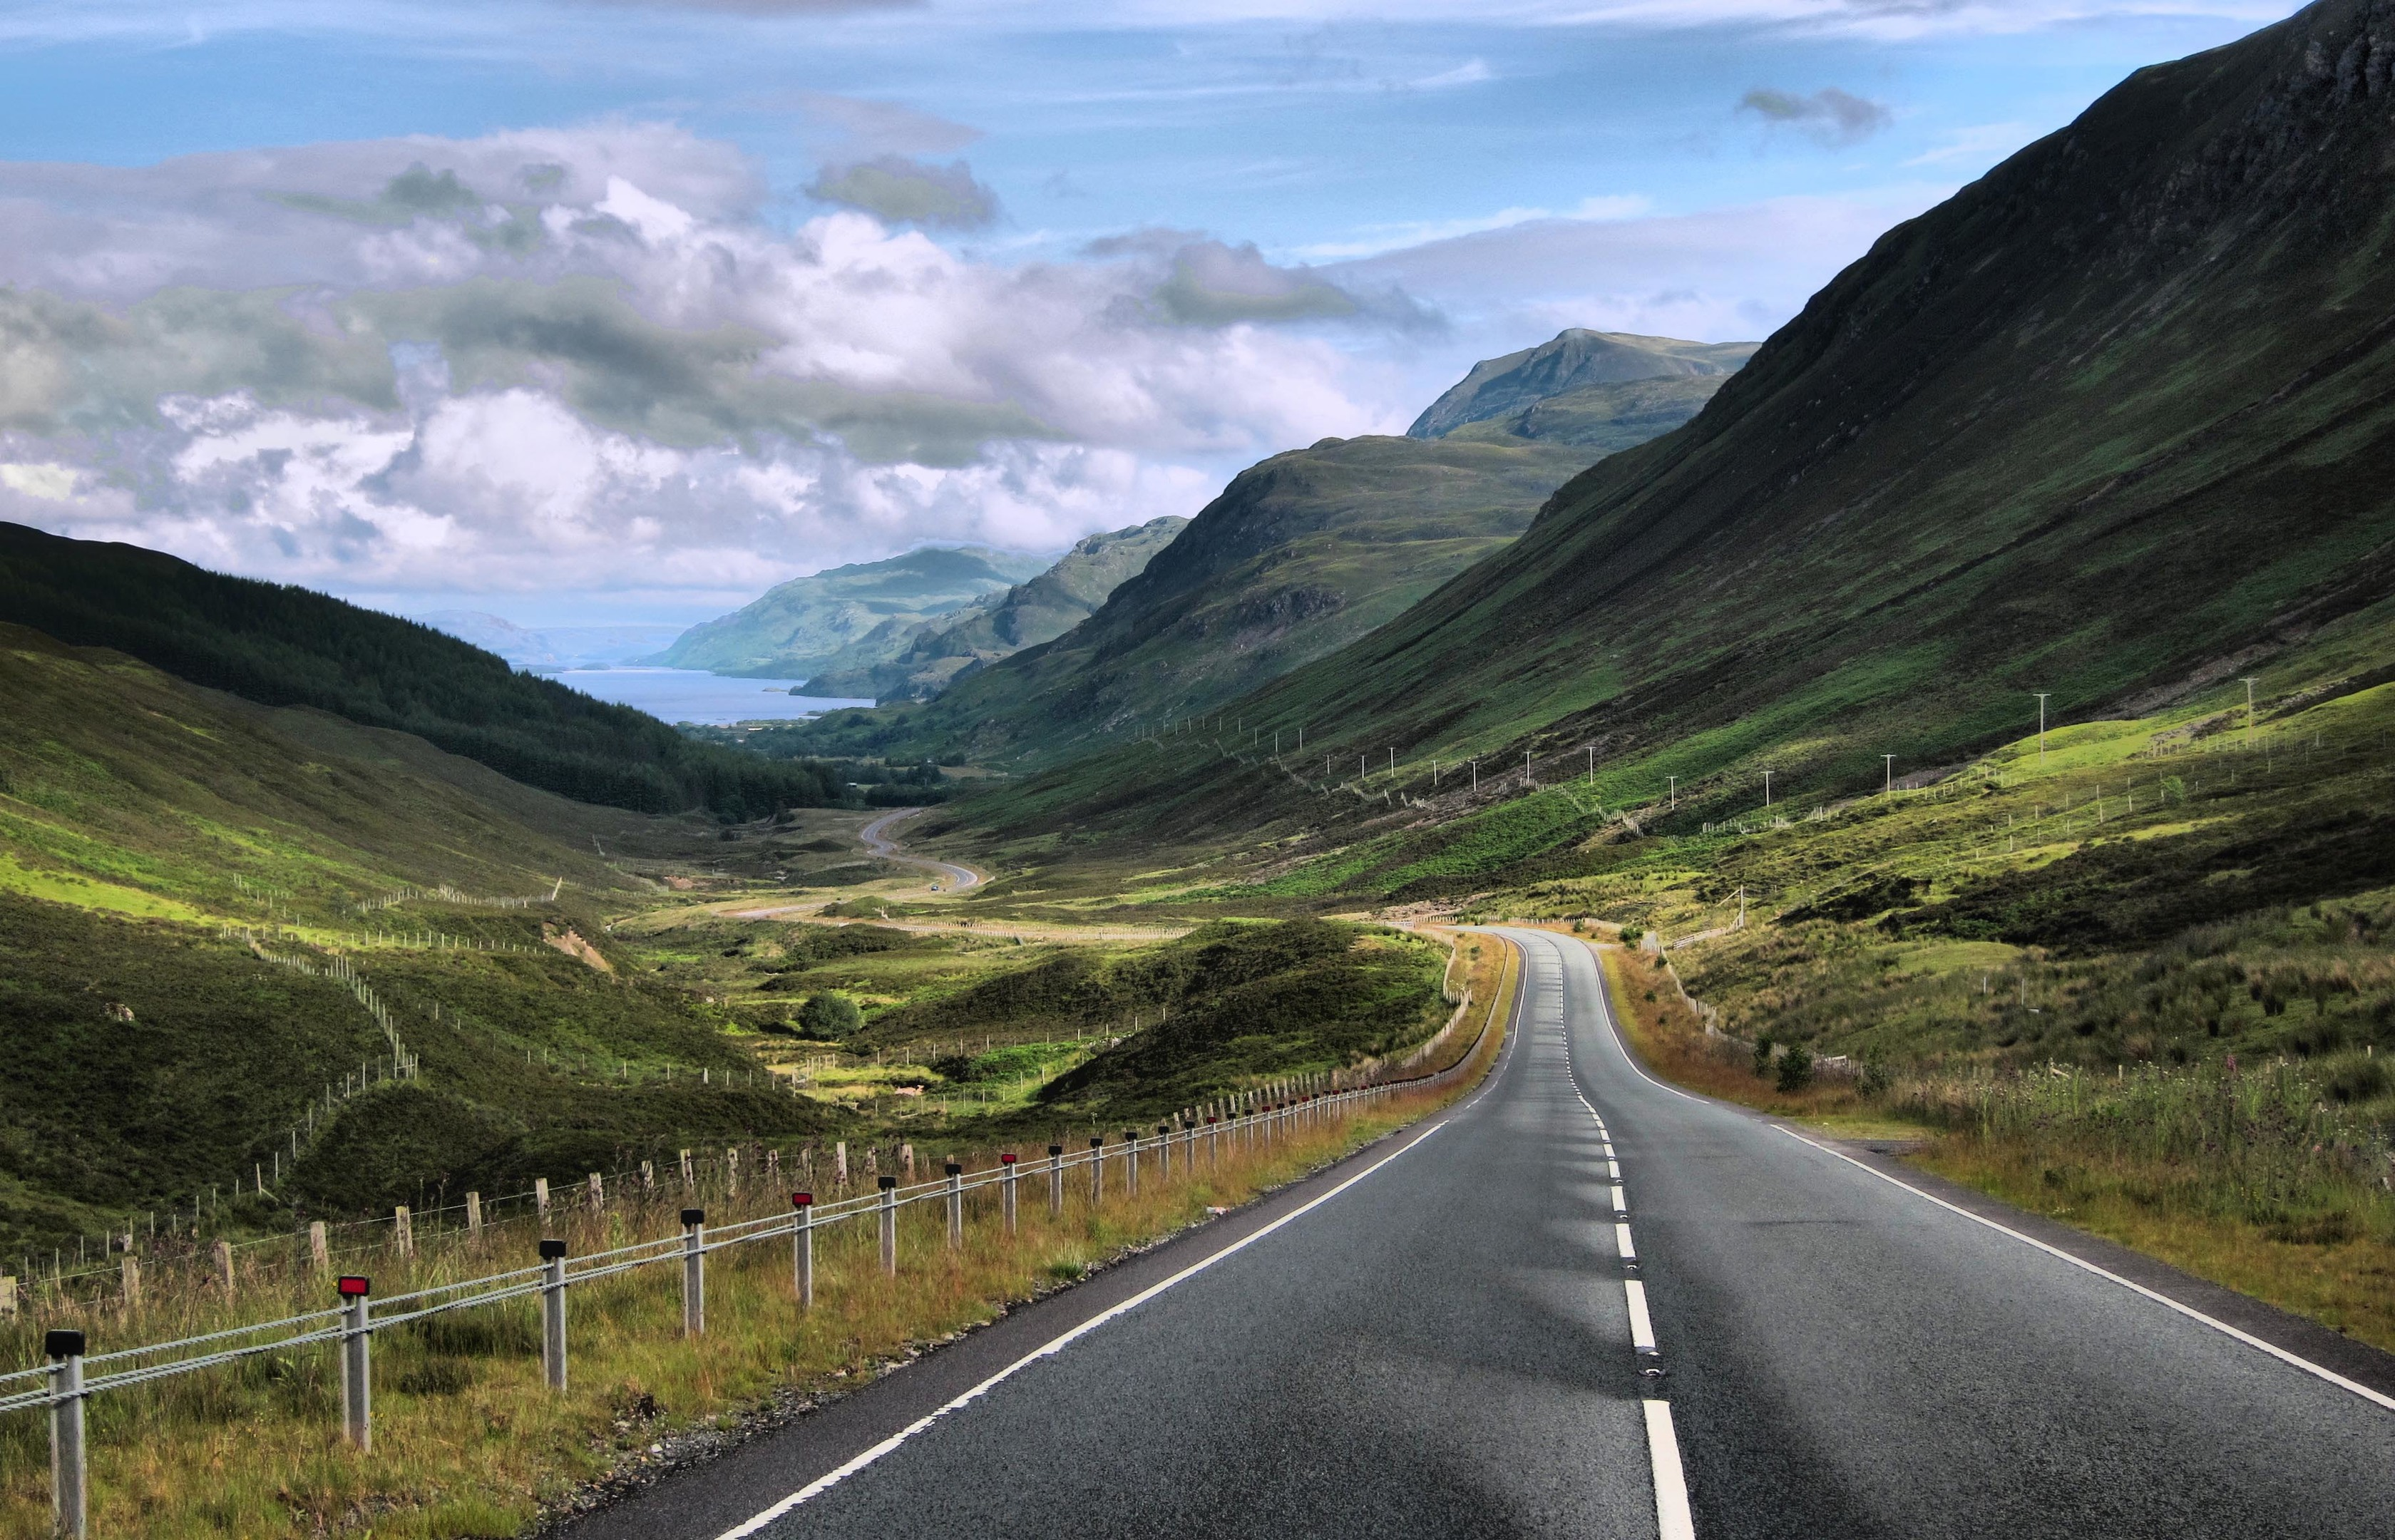 Glen Docherty in Wester Ross. Photo credit: Steve Carter